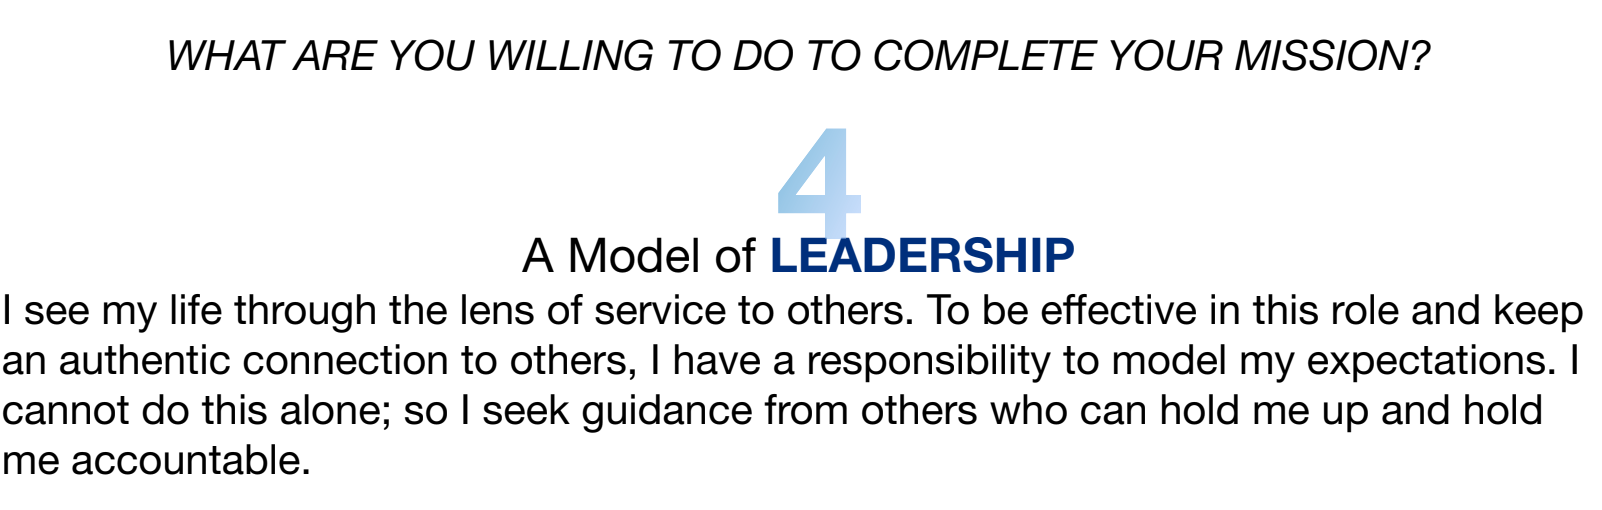 I see my life through the lens of service to others. To be effective in this role and keep an authentic connection to others, I have a responsibility to model my expectations. I cannot do this alone; so I seek guidance from others who can hold me up and hold me accountable.